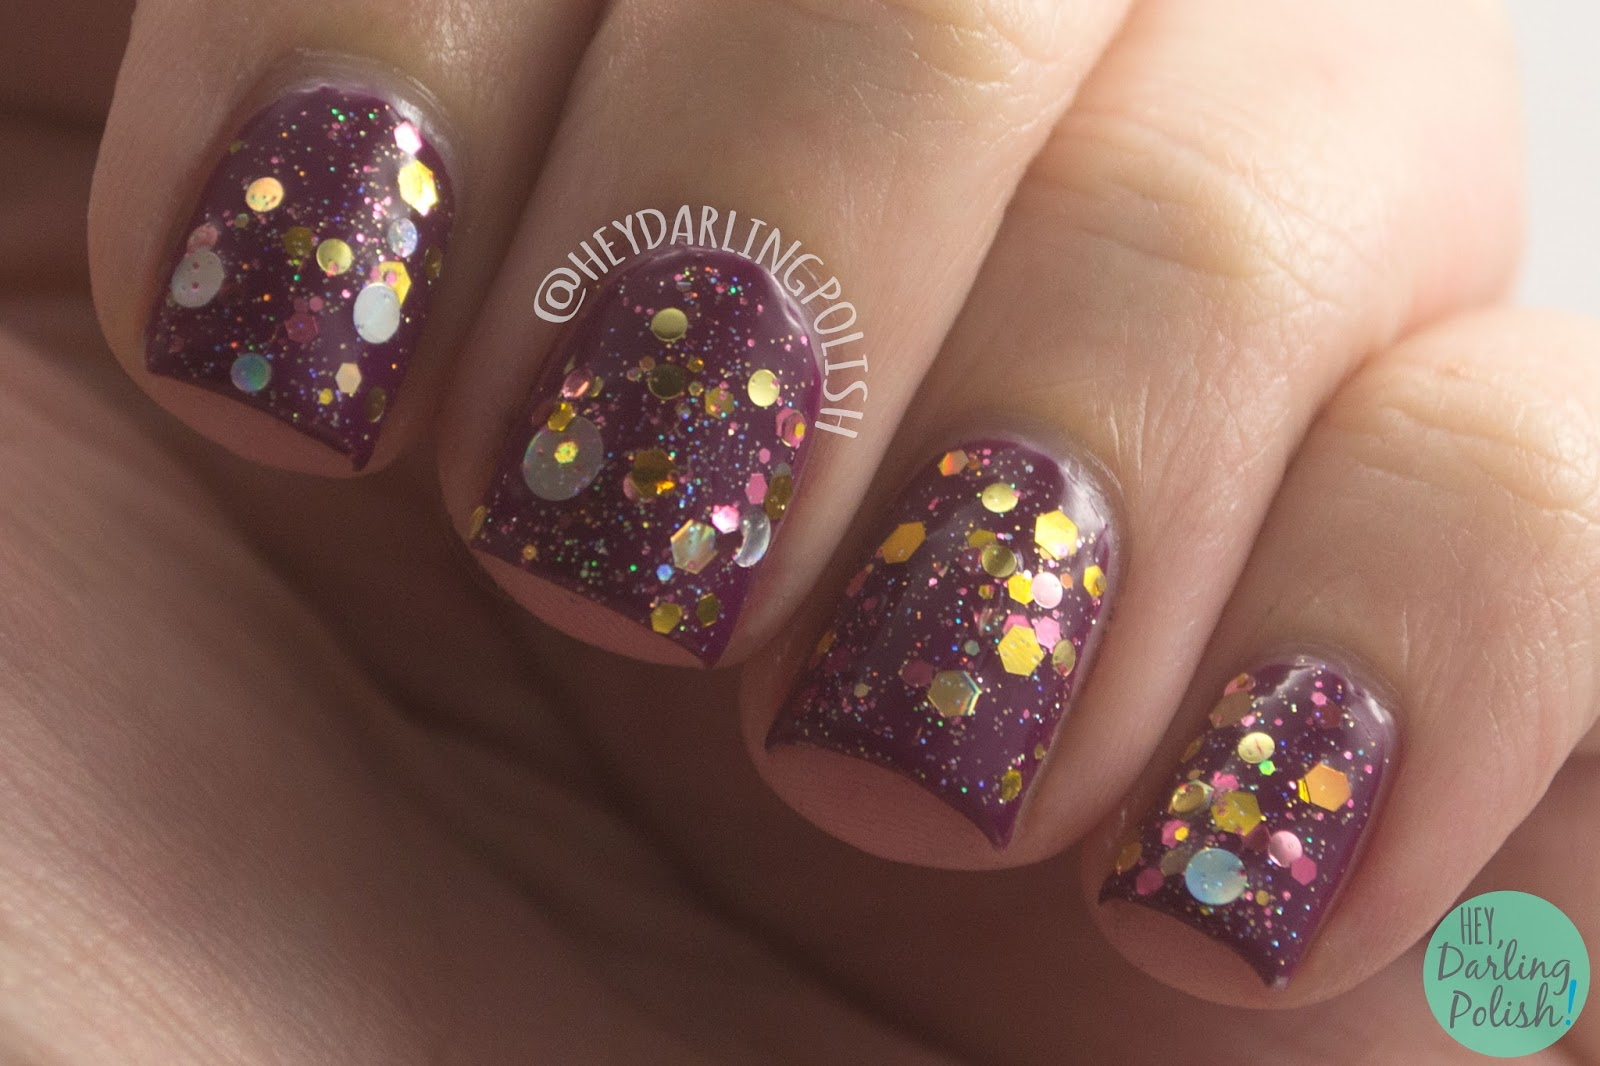 toast-ess with the mostest, gold, pink, nails, nail polish, indie, indie polish, indie nail polish, kbshimmer, hey darling polish, glitter